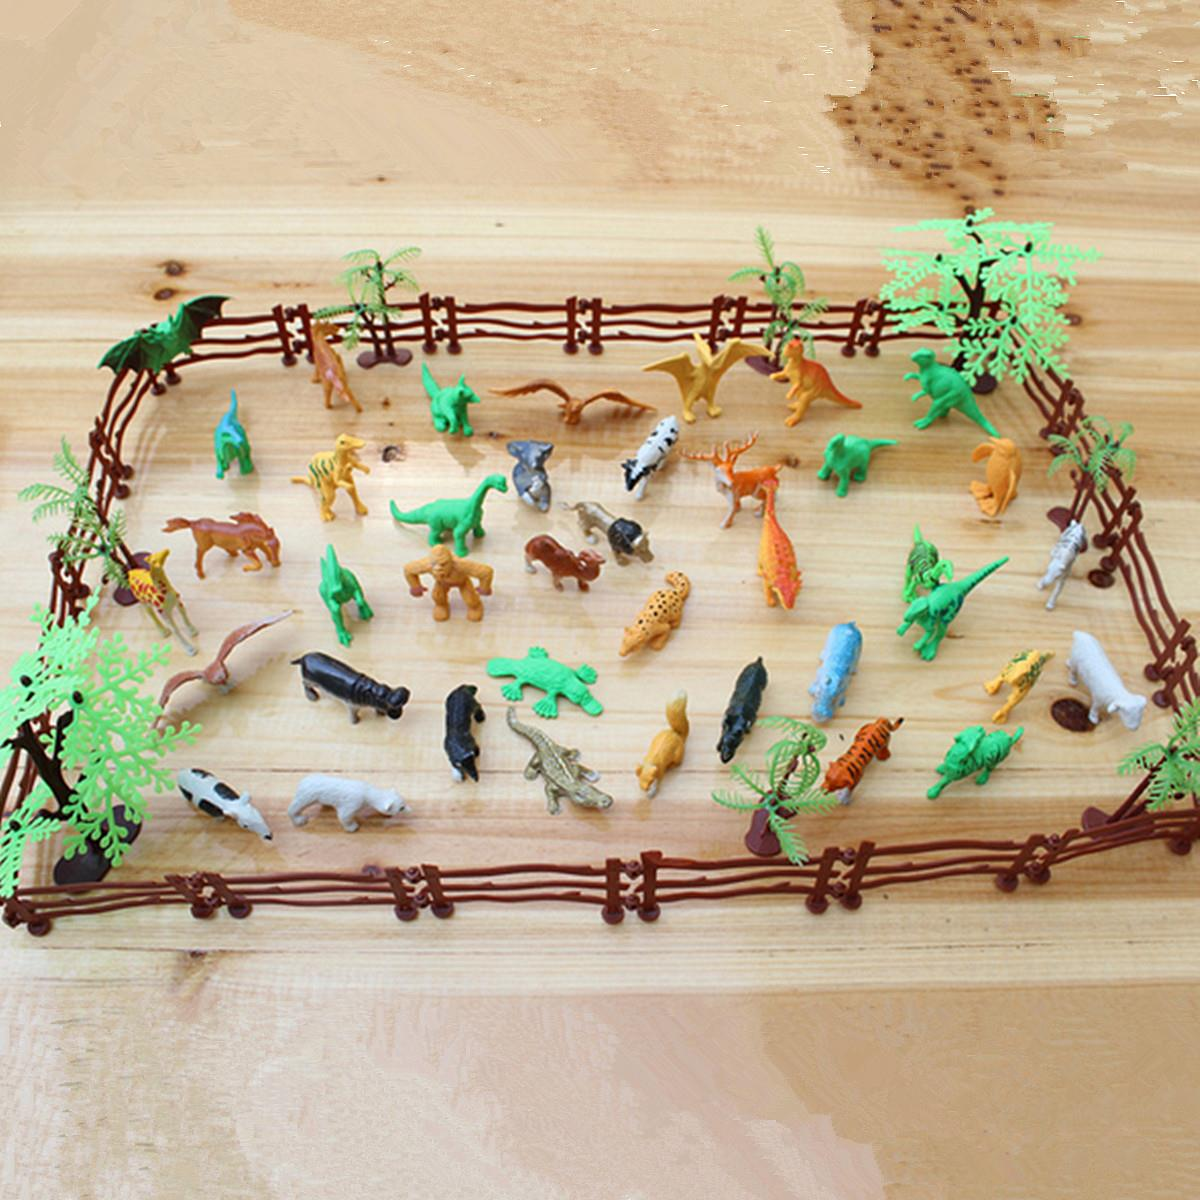 68PCS/set Plastic Farm Yard Wild Fence Tree Animals Model Kids Toys Figures Play Set Toys For Children Kids Adult easyway zoo mini wild animals action figures set figurines kids toys for children wildlife toys simulation animal model toy bear